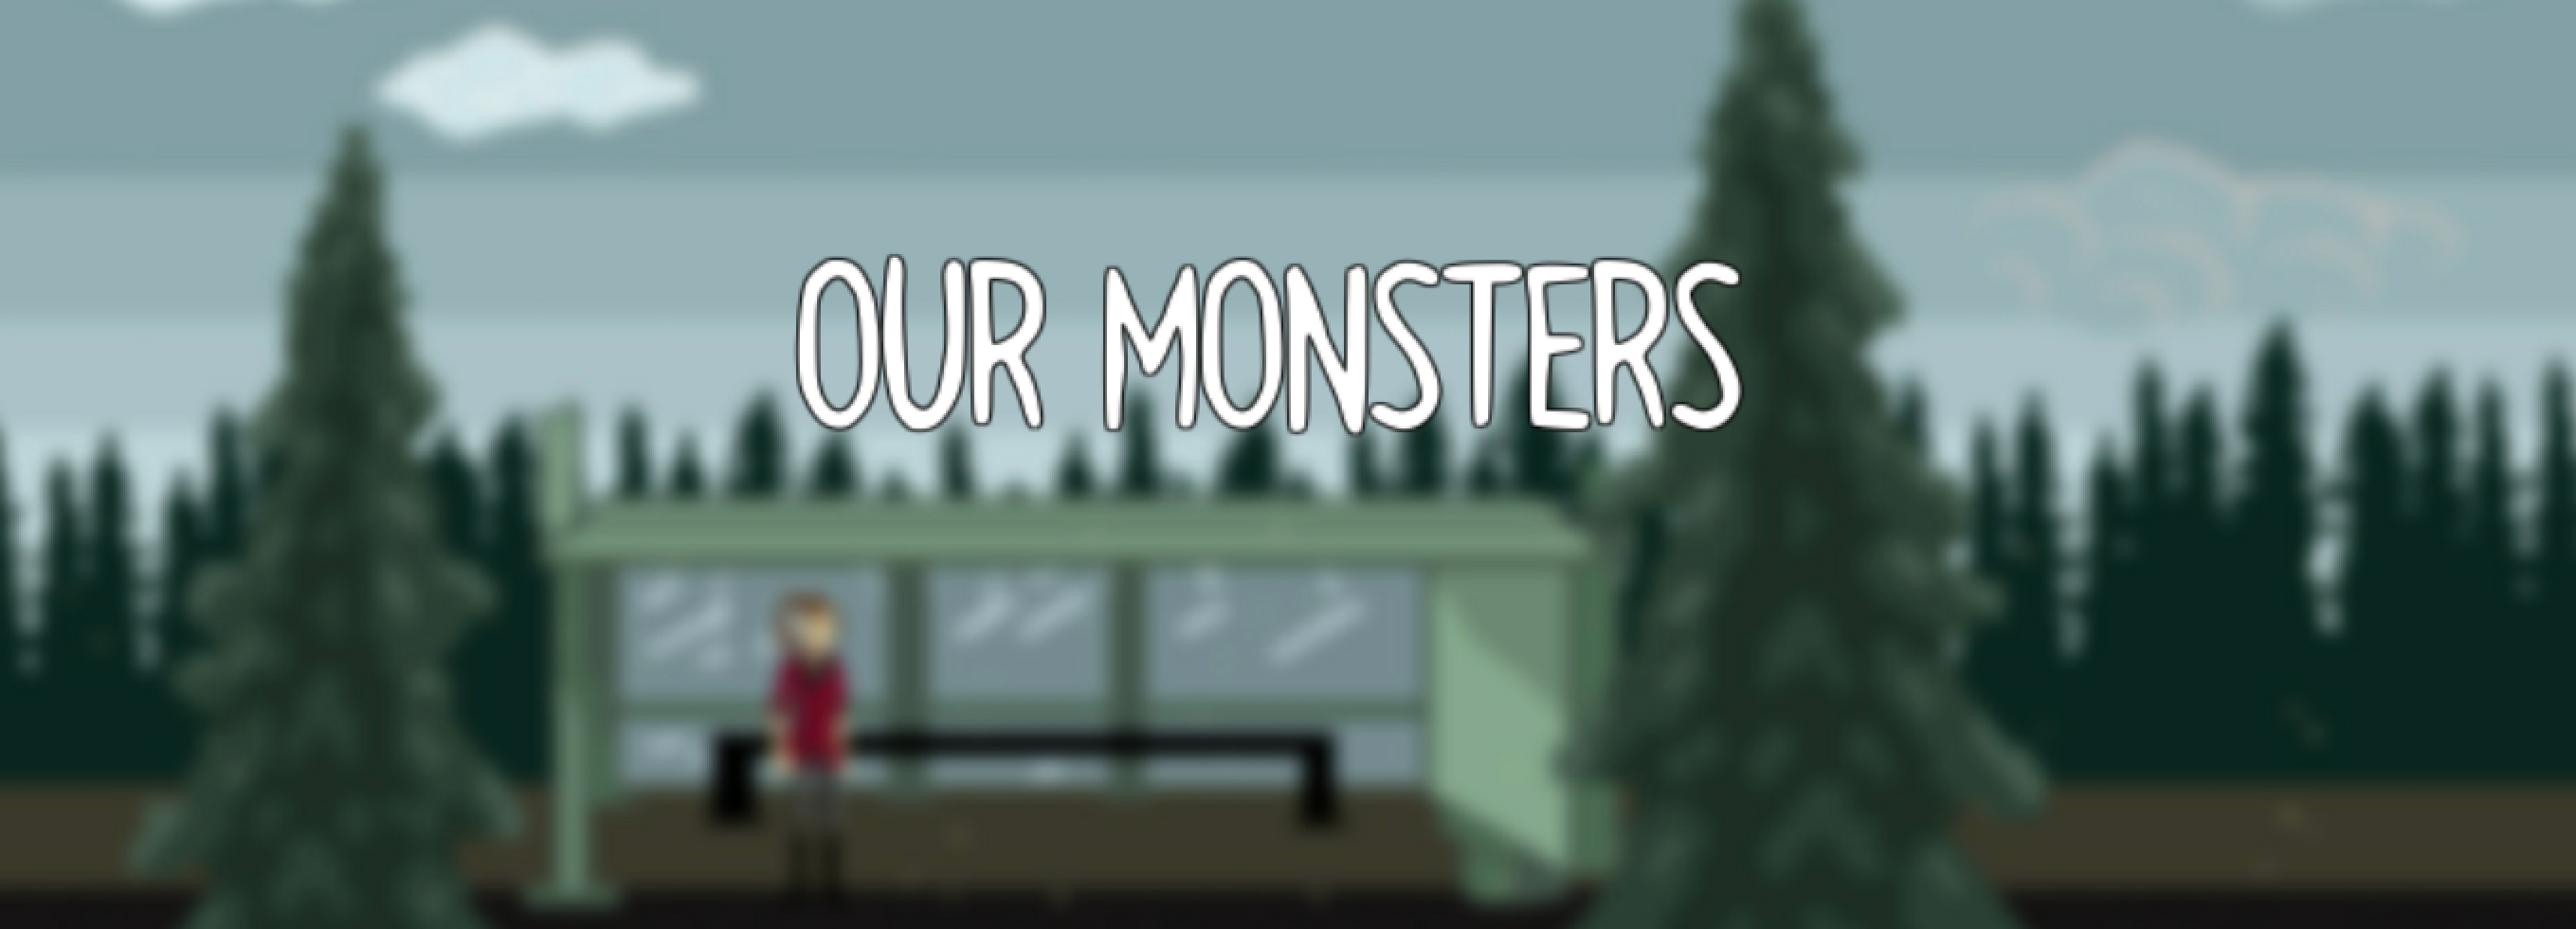 Our Monsters